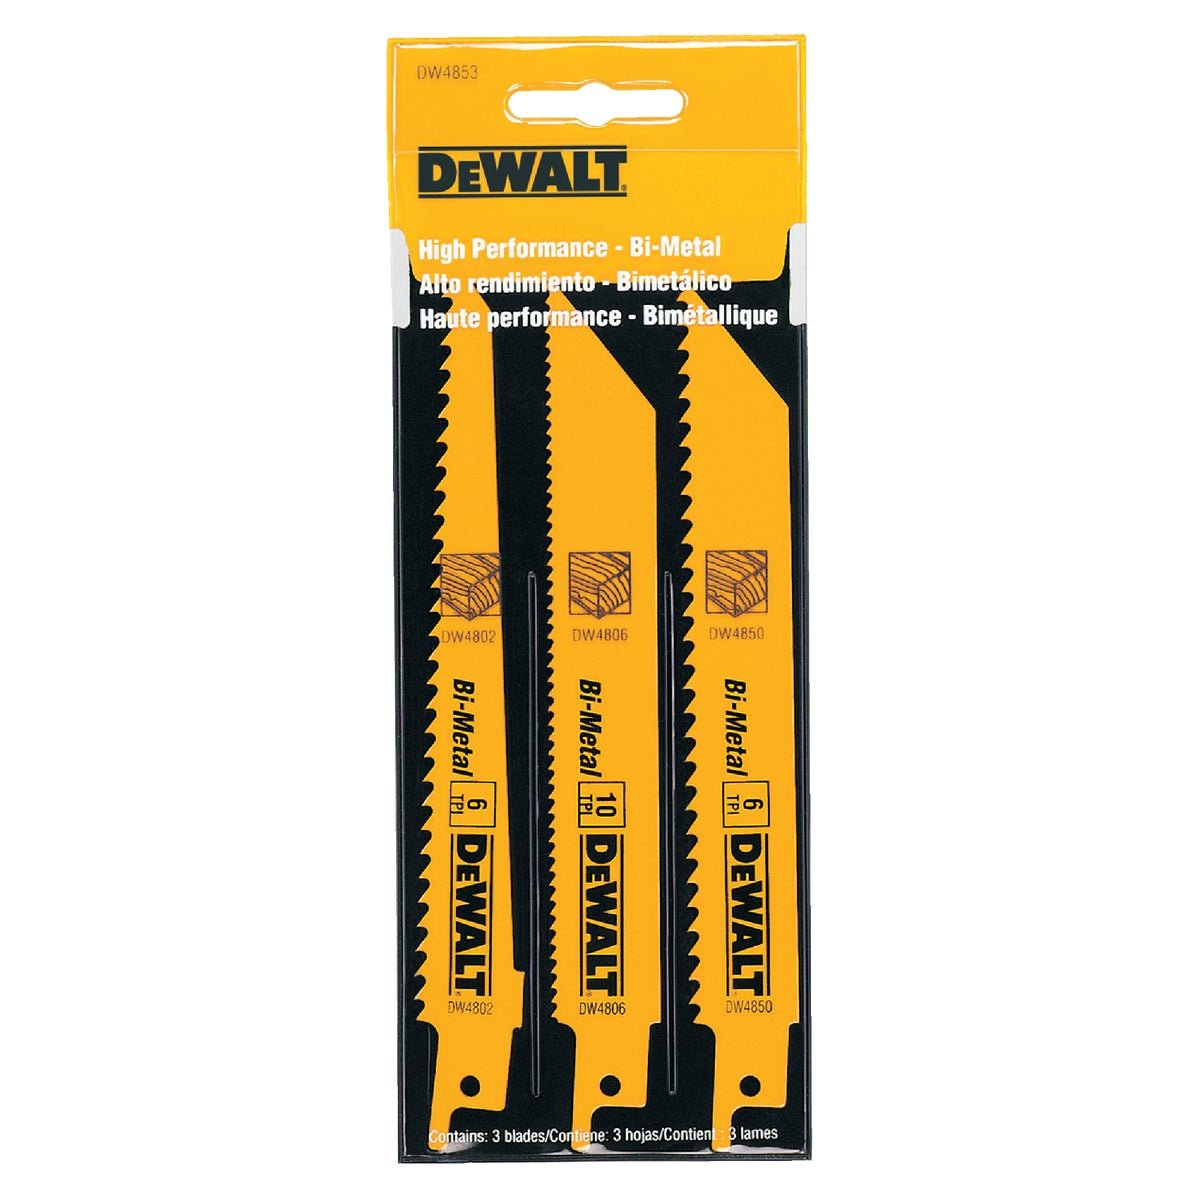 3PC RECIP BLADE SET - DW4853 by DeWalt